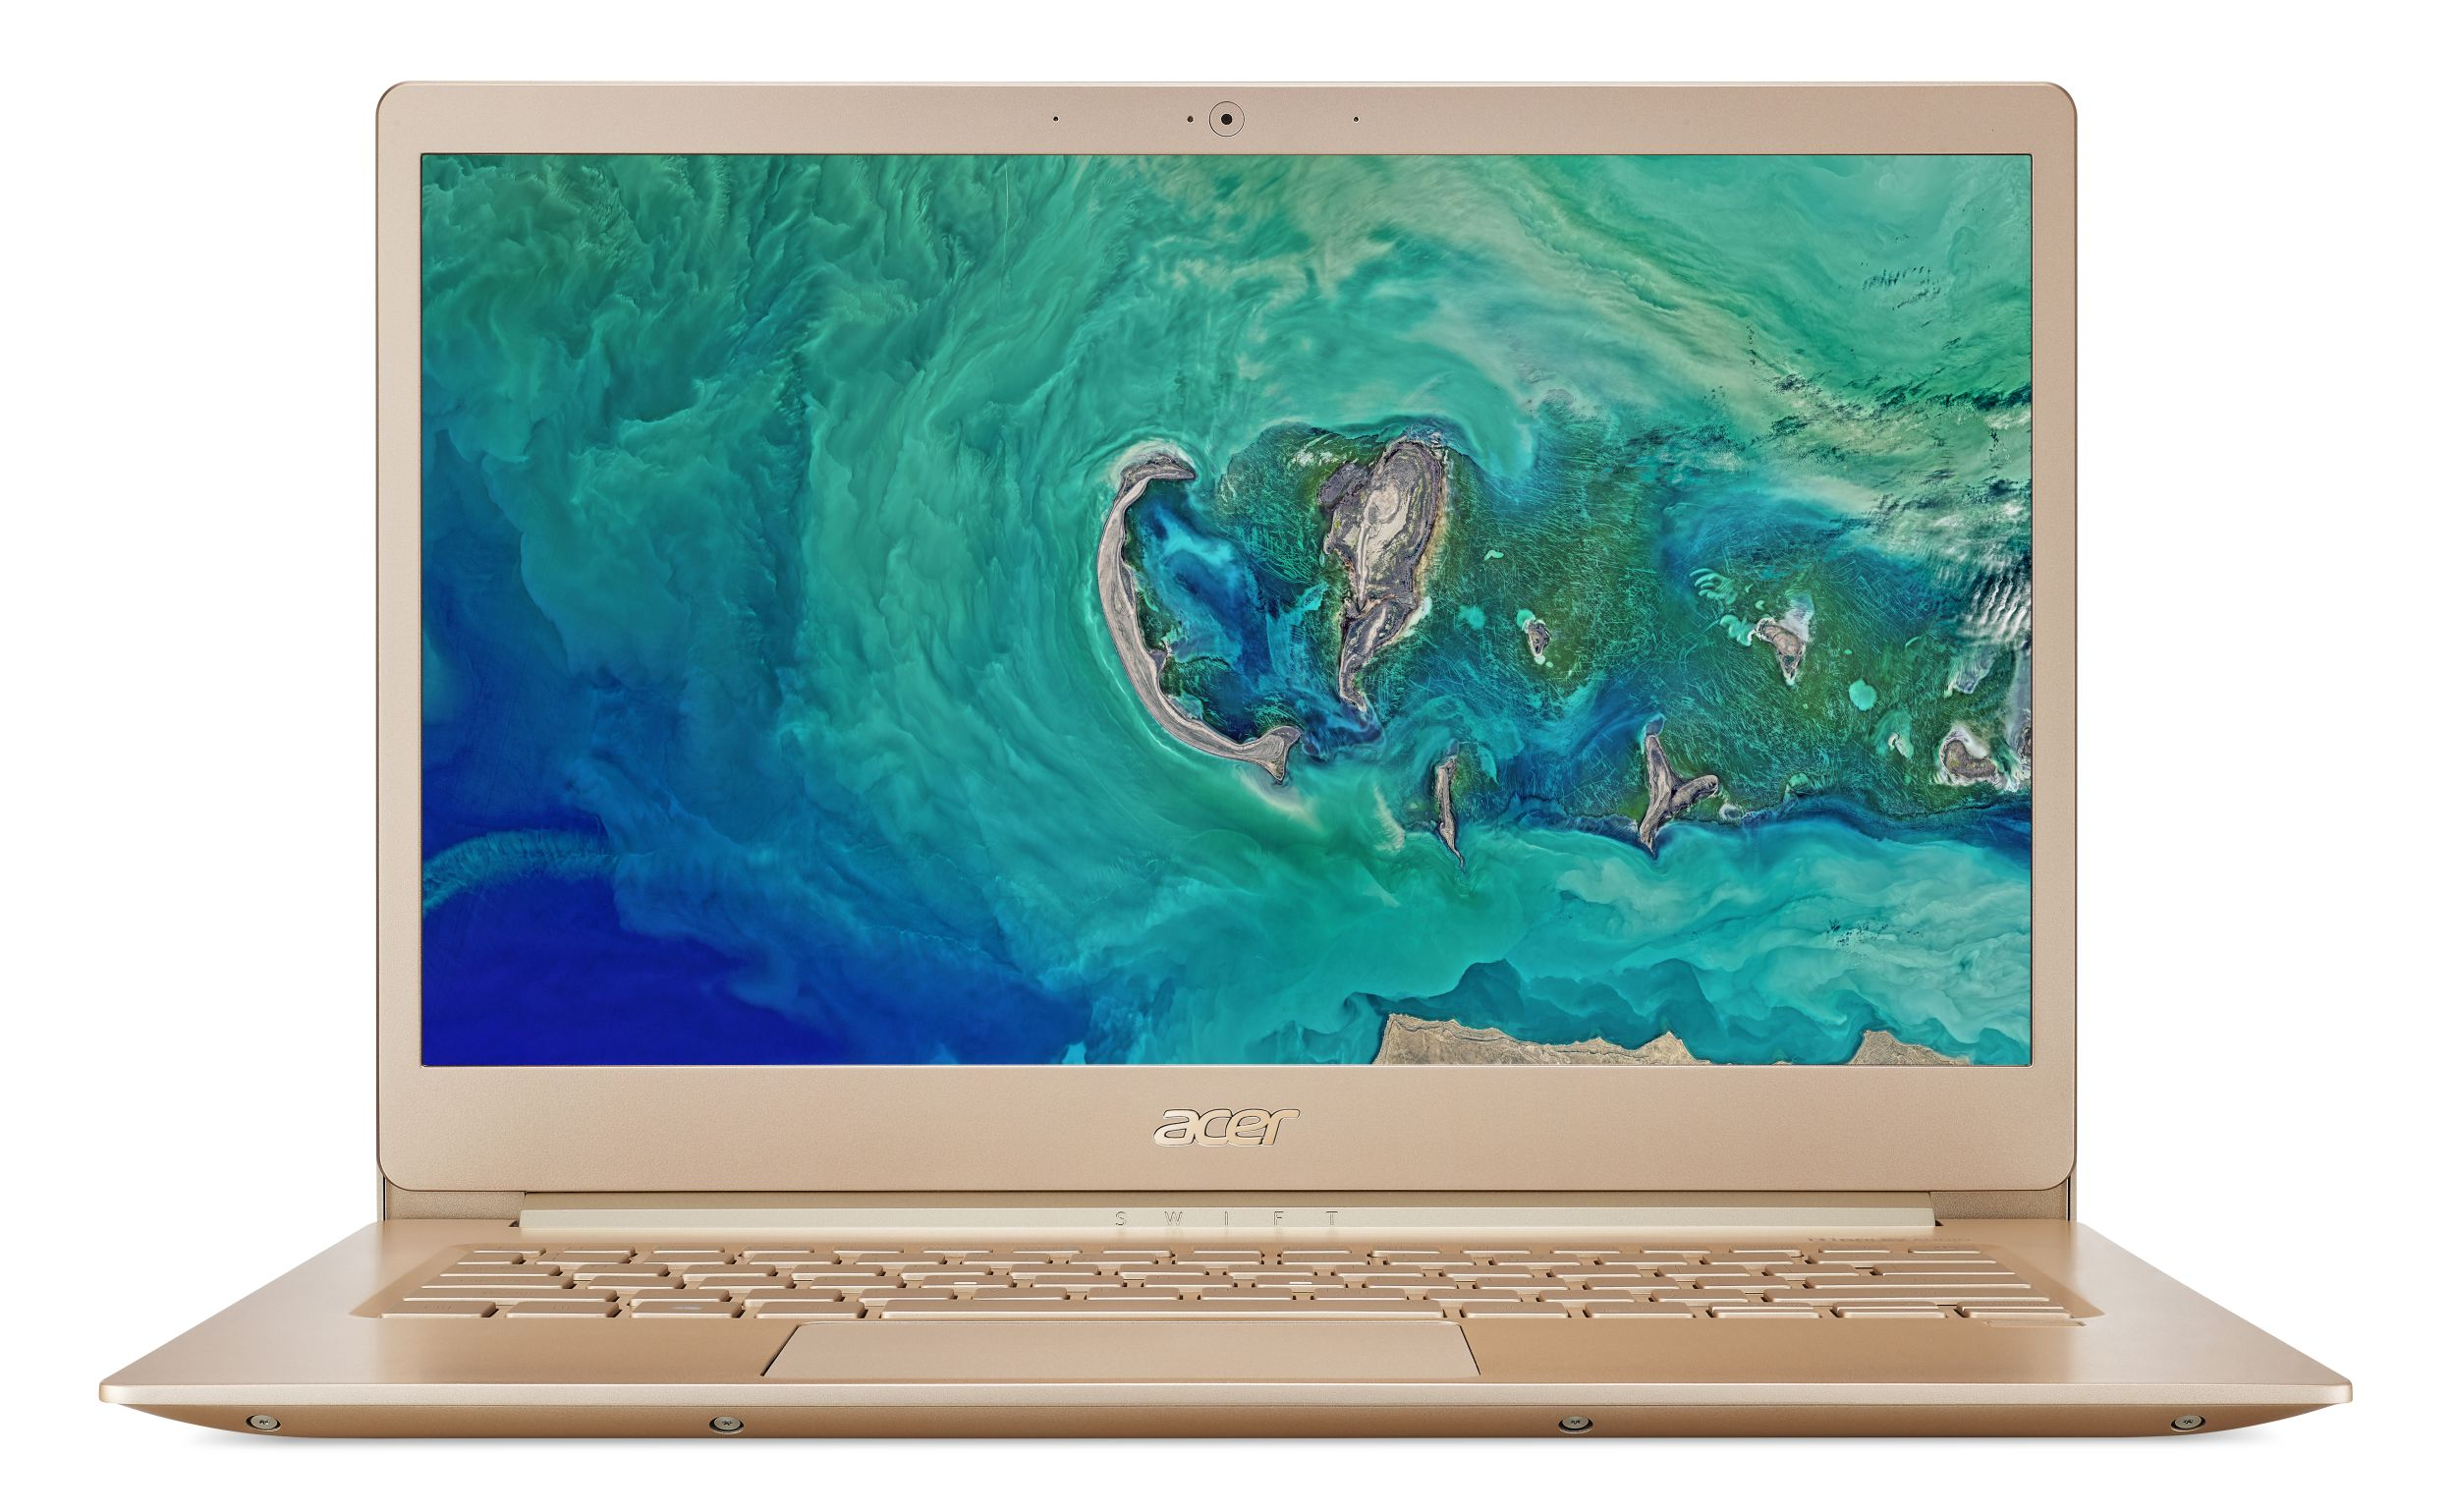 "Acer Swift 5 (SF514-52T-81VF) Core i7-8550U/16GB+n/a/512GB+N(M.2)/14"" FHD IPS Multi-touch LCD/HD Graphics/W10 Home/Gold,,970g"